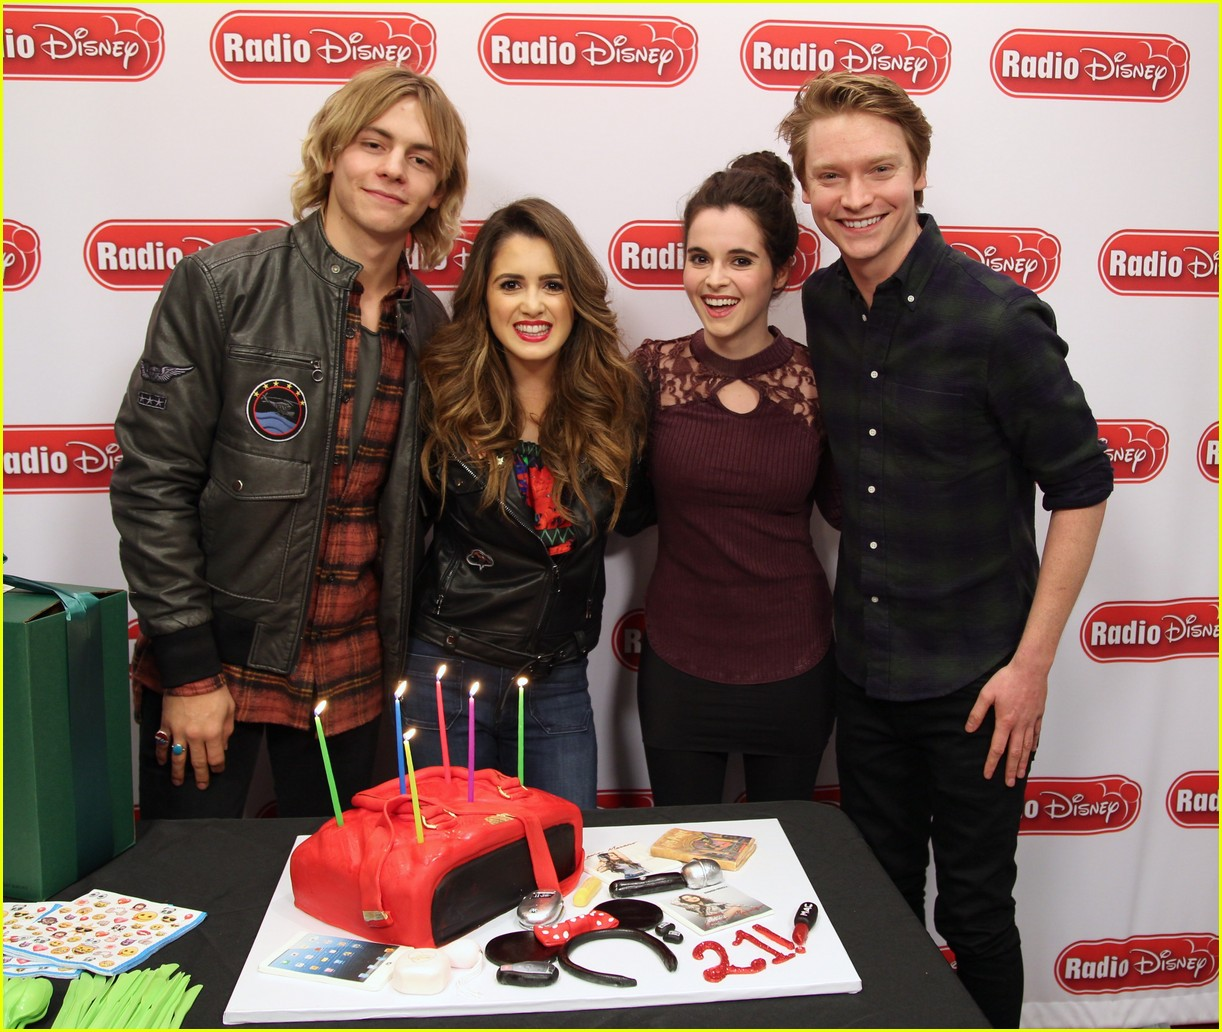 ross lynch surprises laura marano birthday radio disney 01